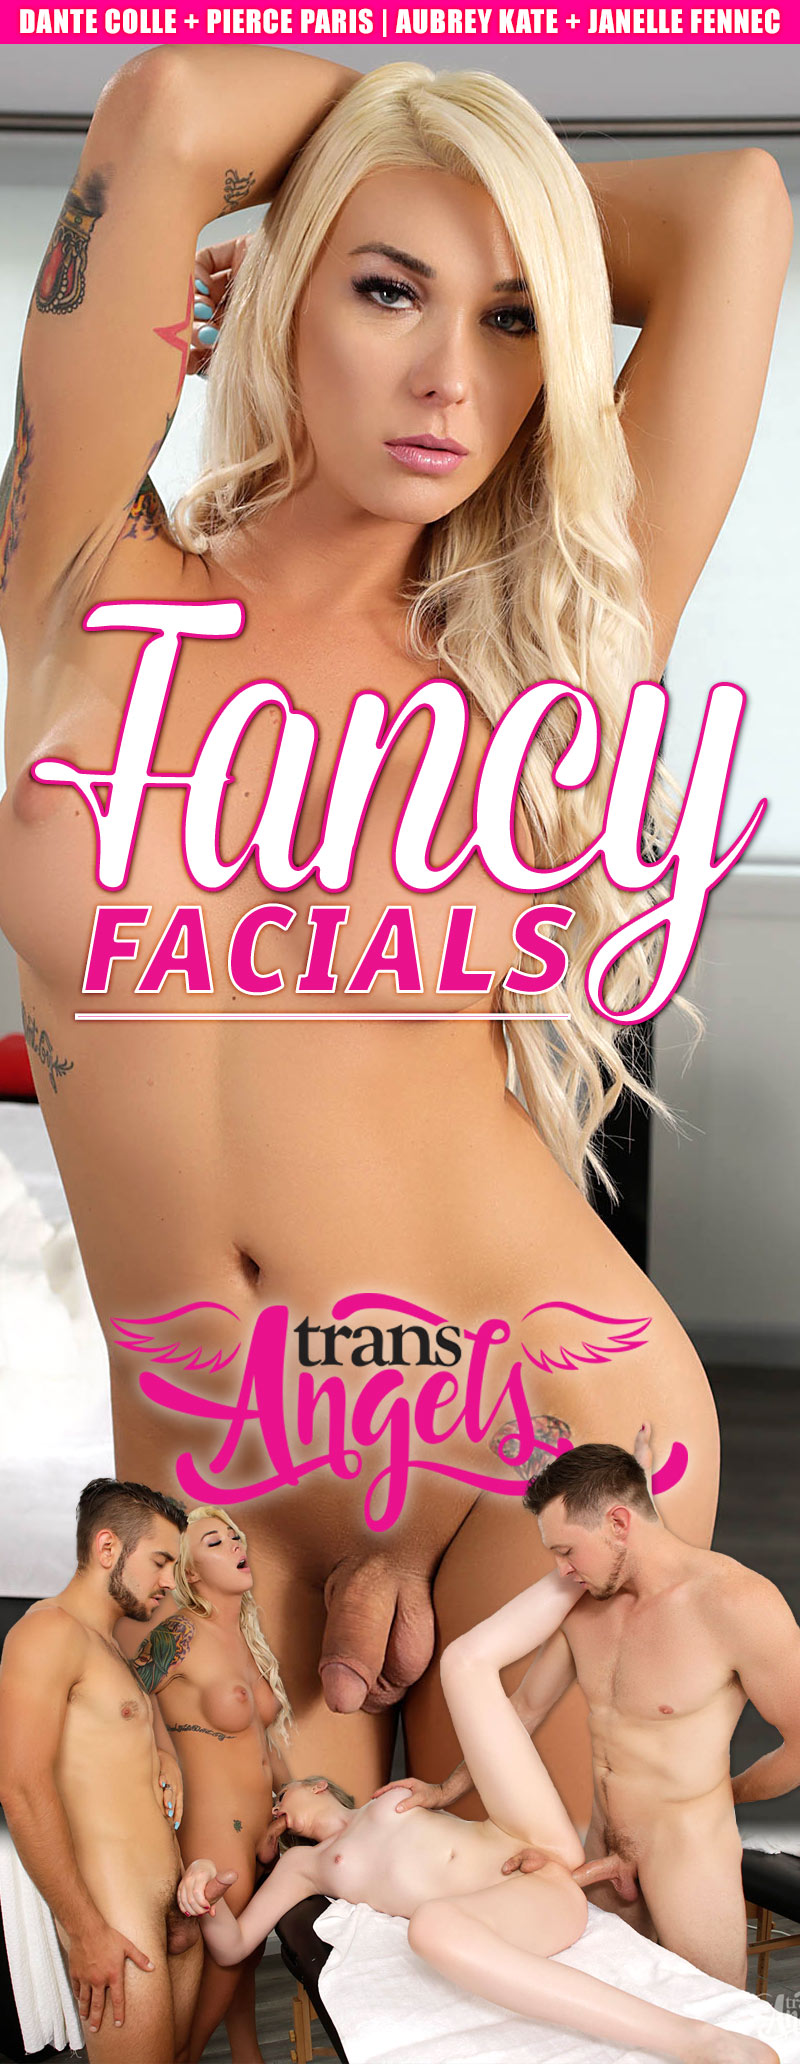 Fancy Facials (Dante Colle and Pierce Paris Fuck Aubrey Kate & Janelle Fennec) (Bareback) at Trans Angels